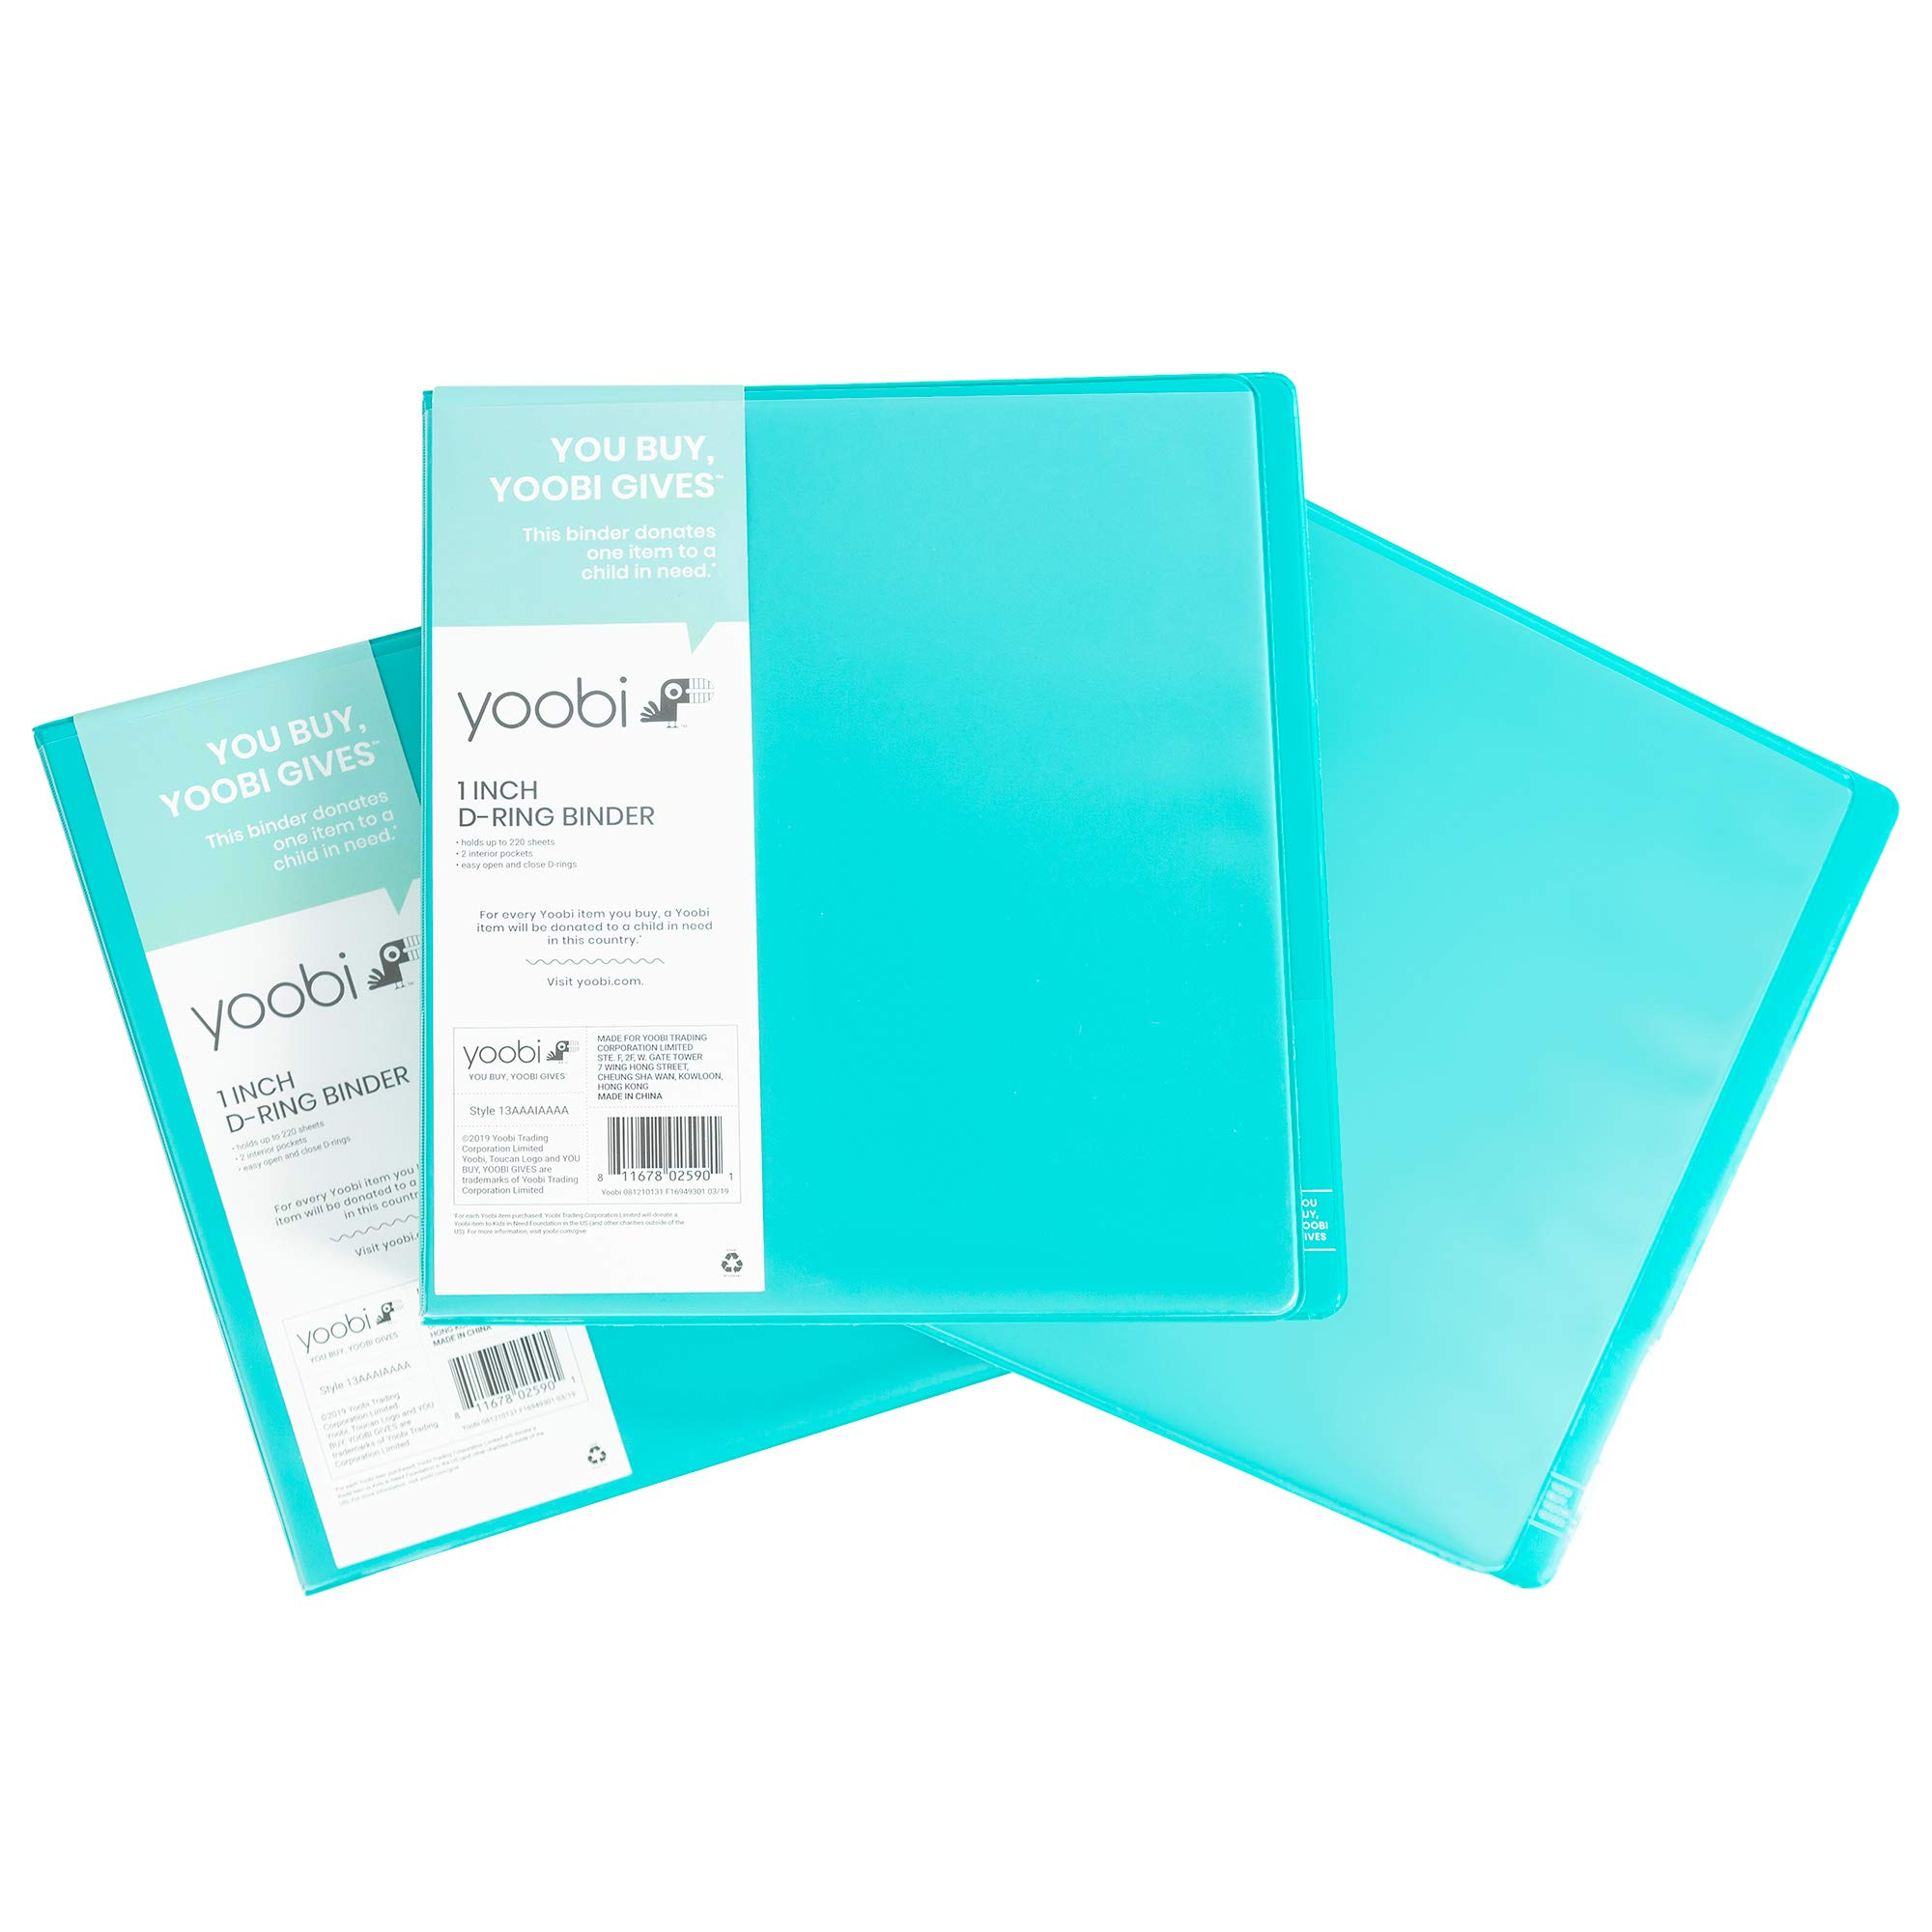 Yoobi 3-Ring Binders | 3-Pack, 1 Inch Size | Aqua | Holds 275 Pages Each, with Pockets for Organization | for School, Home, or Office Use by Yoobi